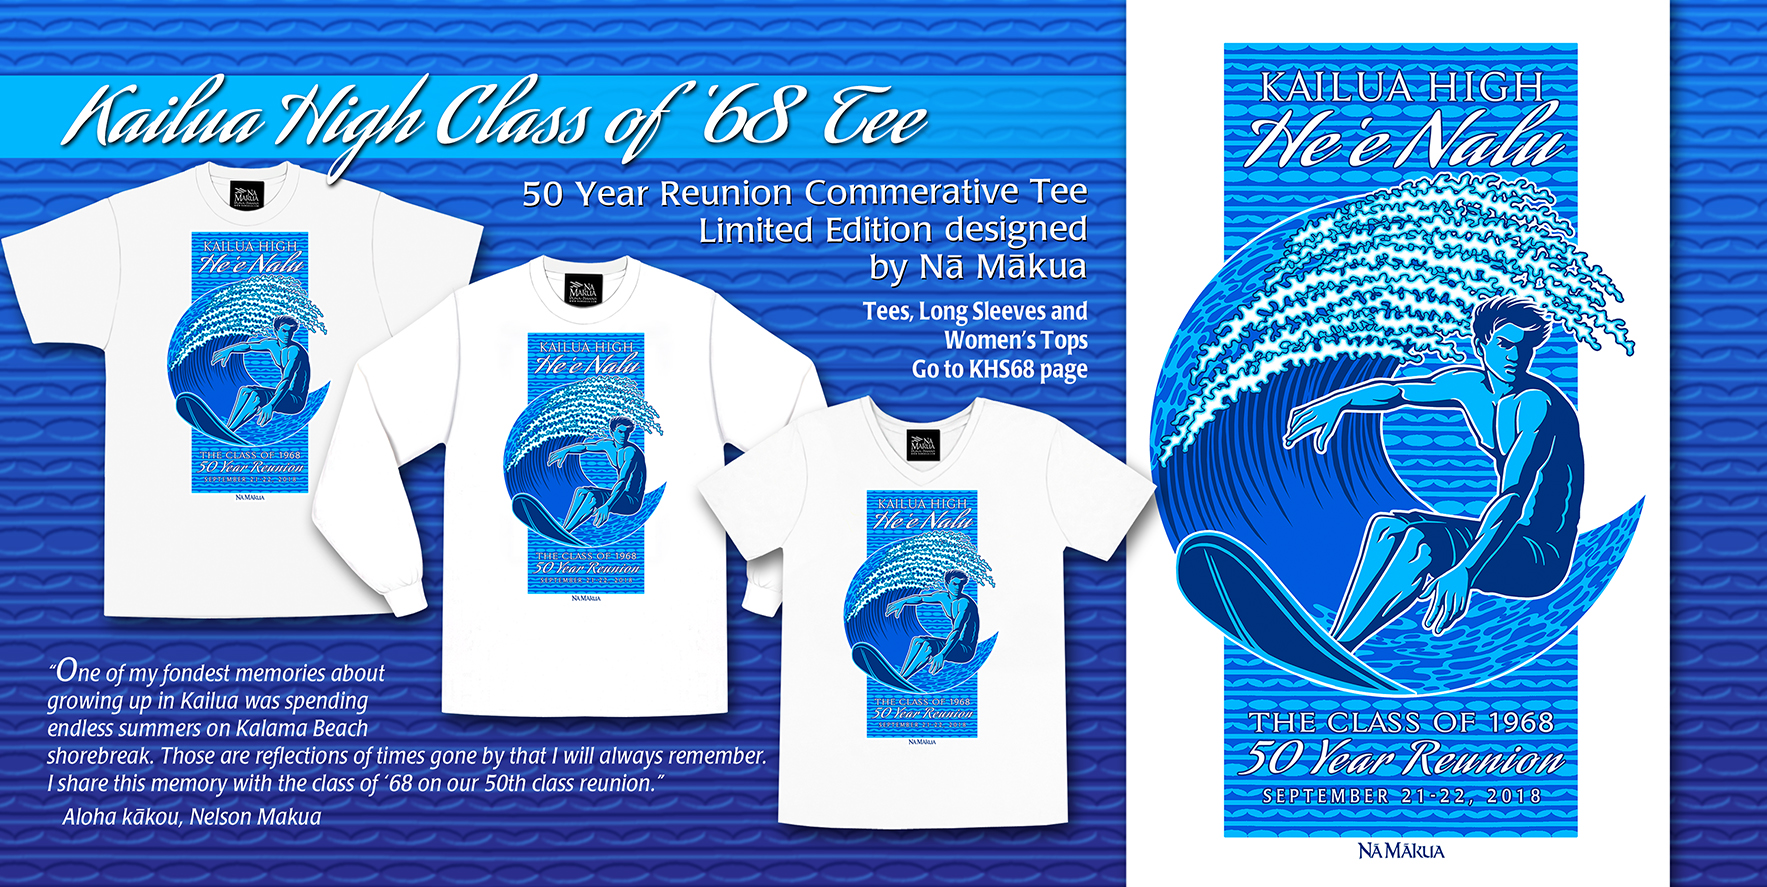 Kailua High School 68 Reunion Homepage